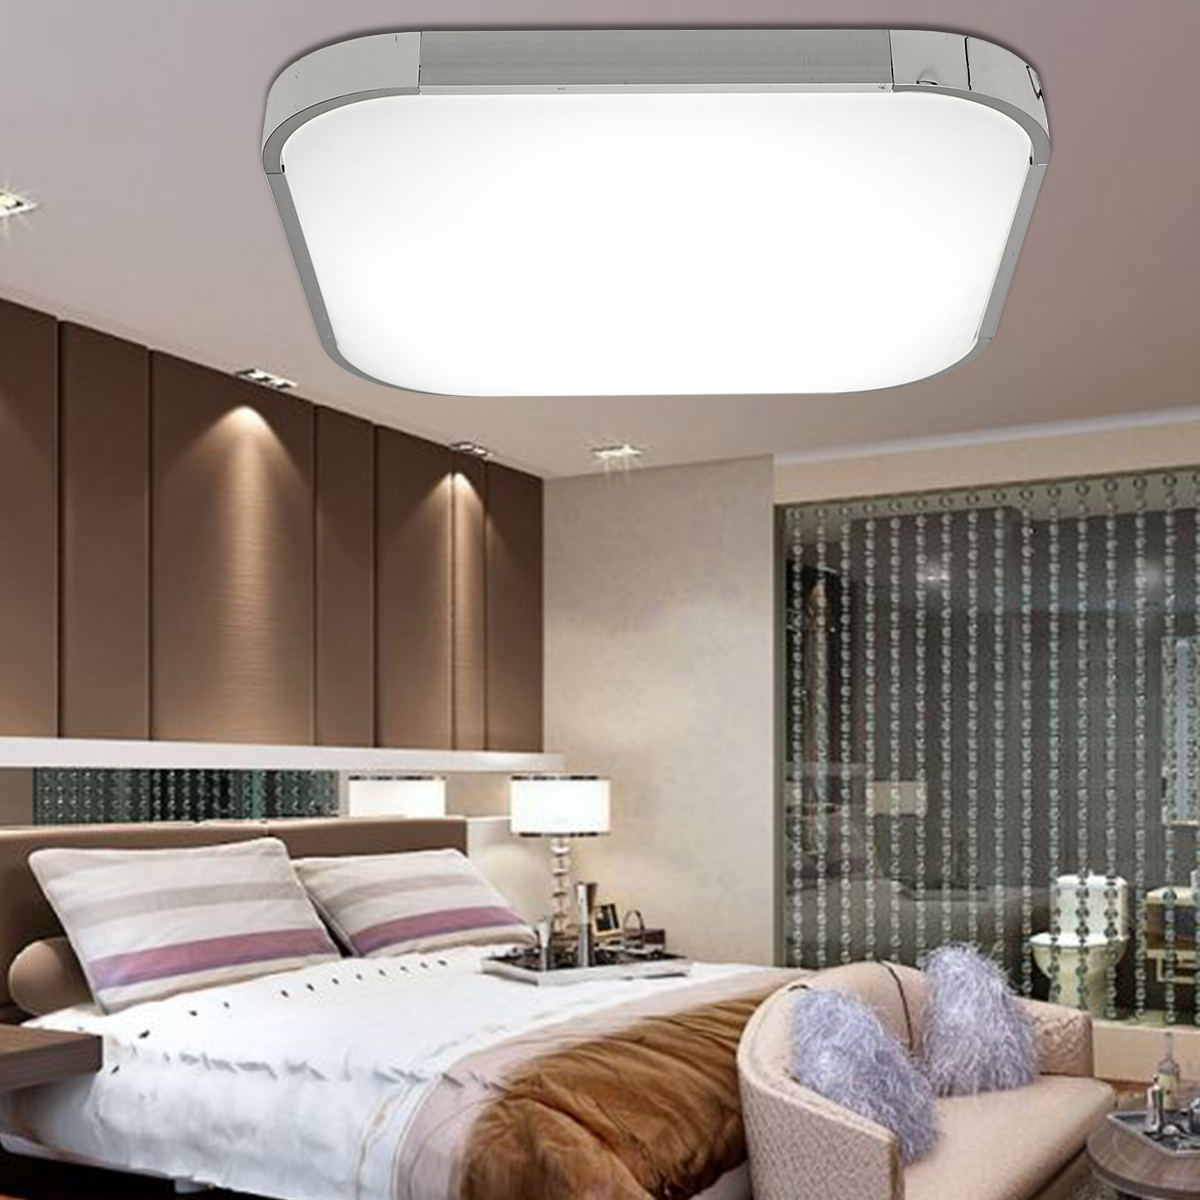 28W Square LED Ceiling Lights Down Light Flush Mount Ceiling Lamp for Living Room Home Bedroom Kitchen Fixture White Lighting цена 2017